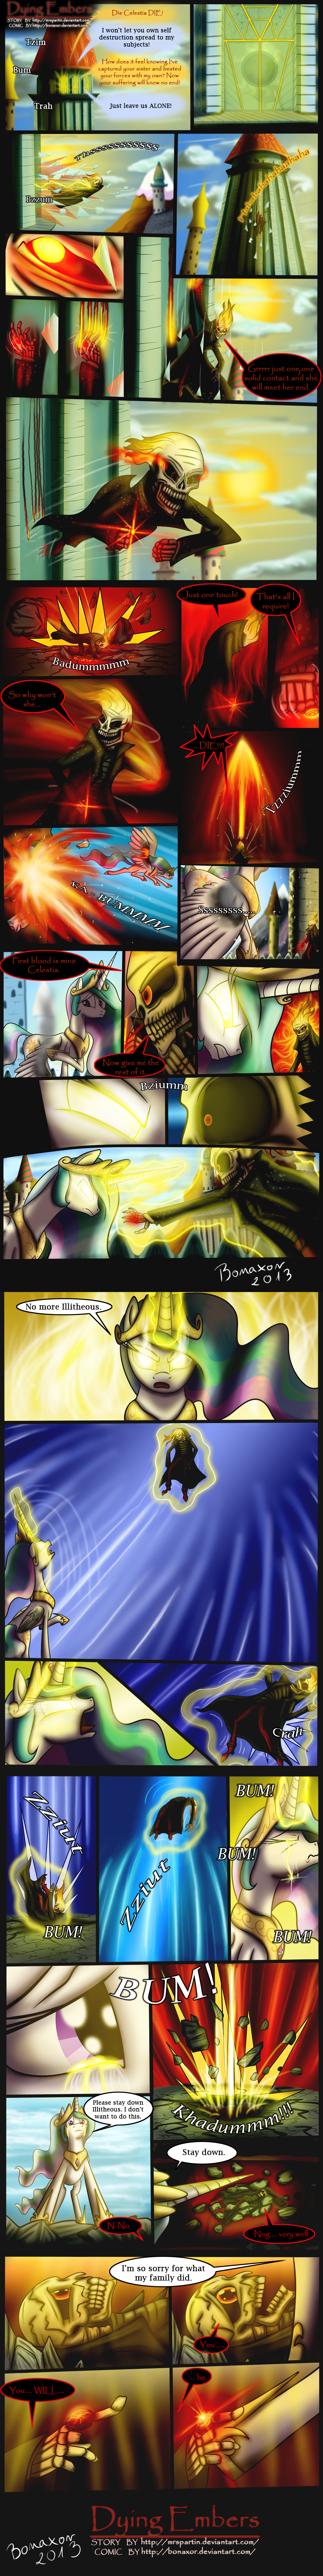 MLP - Dying Embers part 2 by Bonaxor